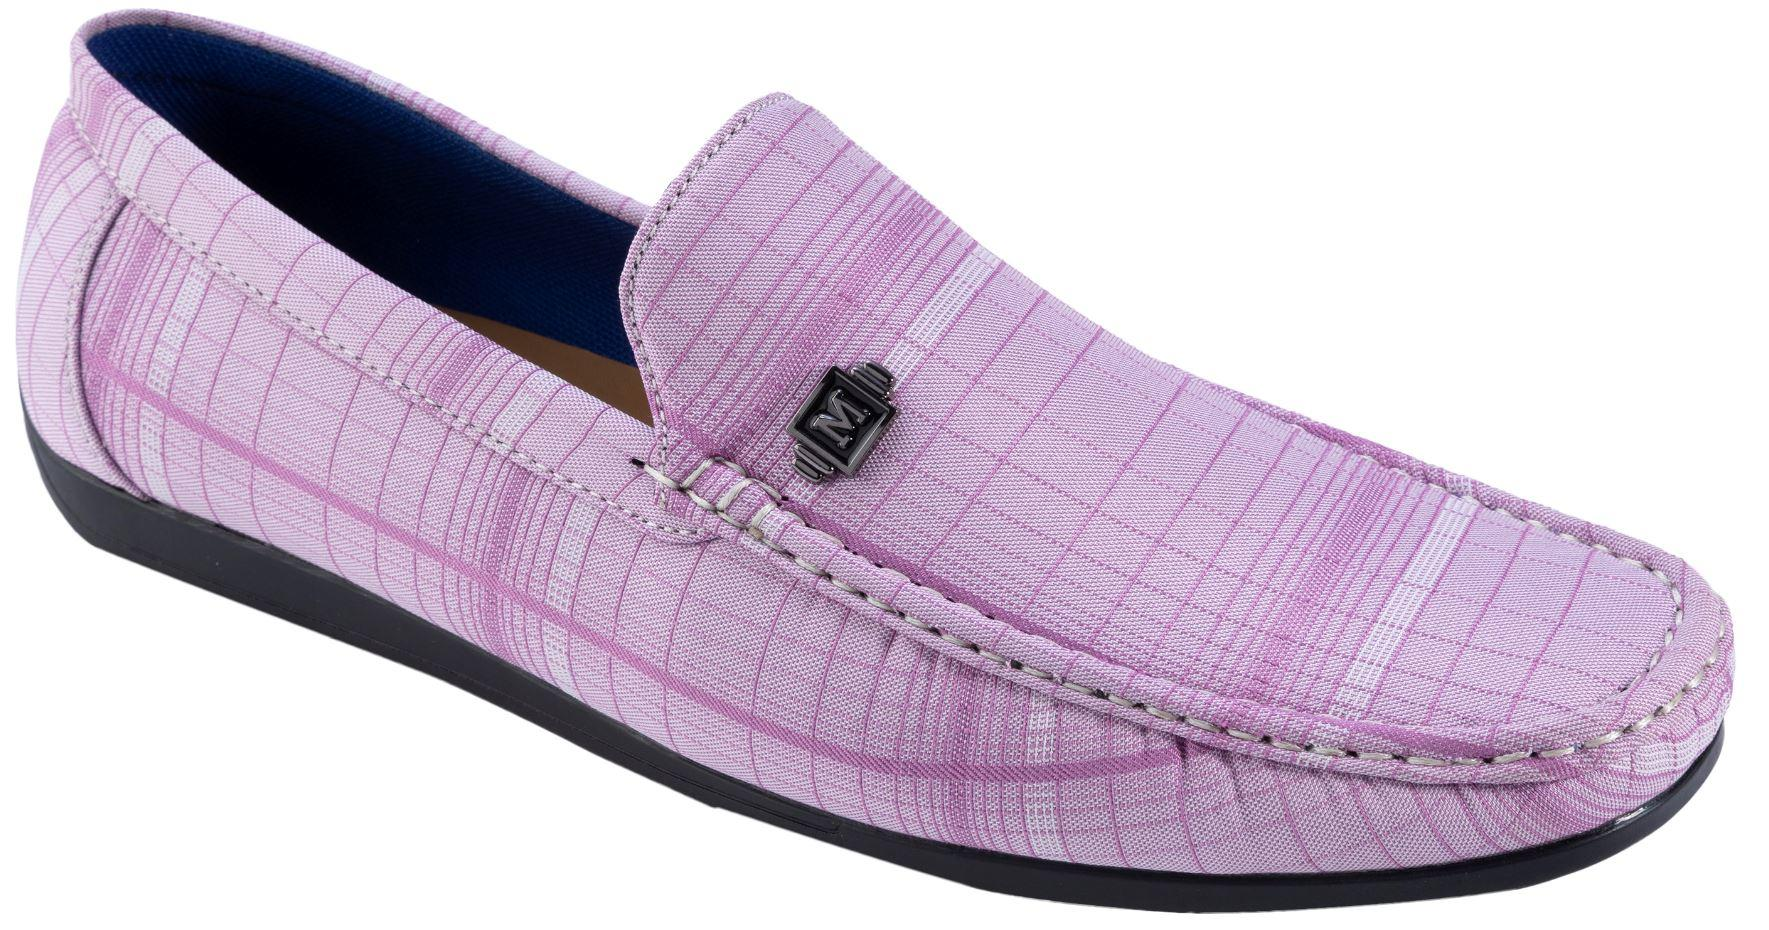 d49e3bede37 Montique S-1901 Men s Loafers - Mens Matching Shoes Lavender